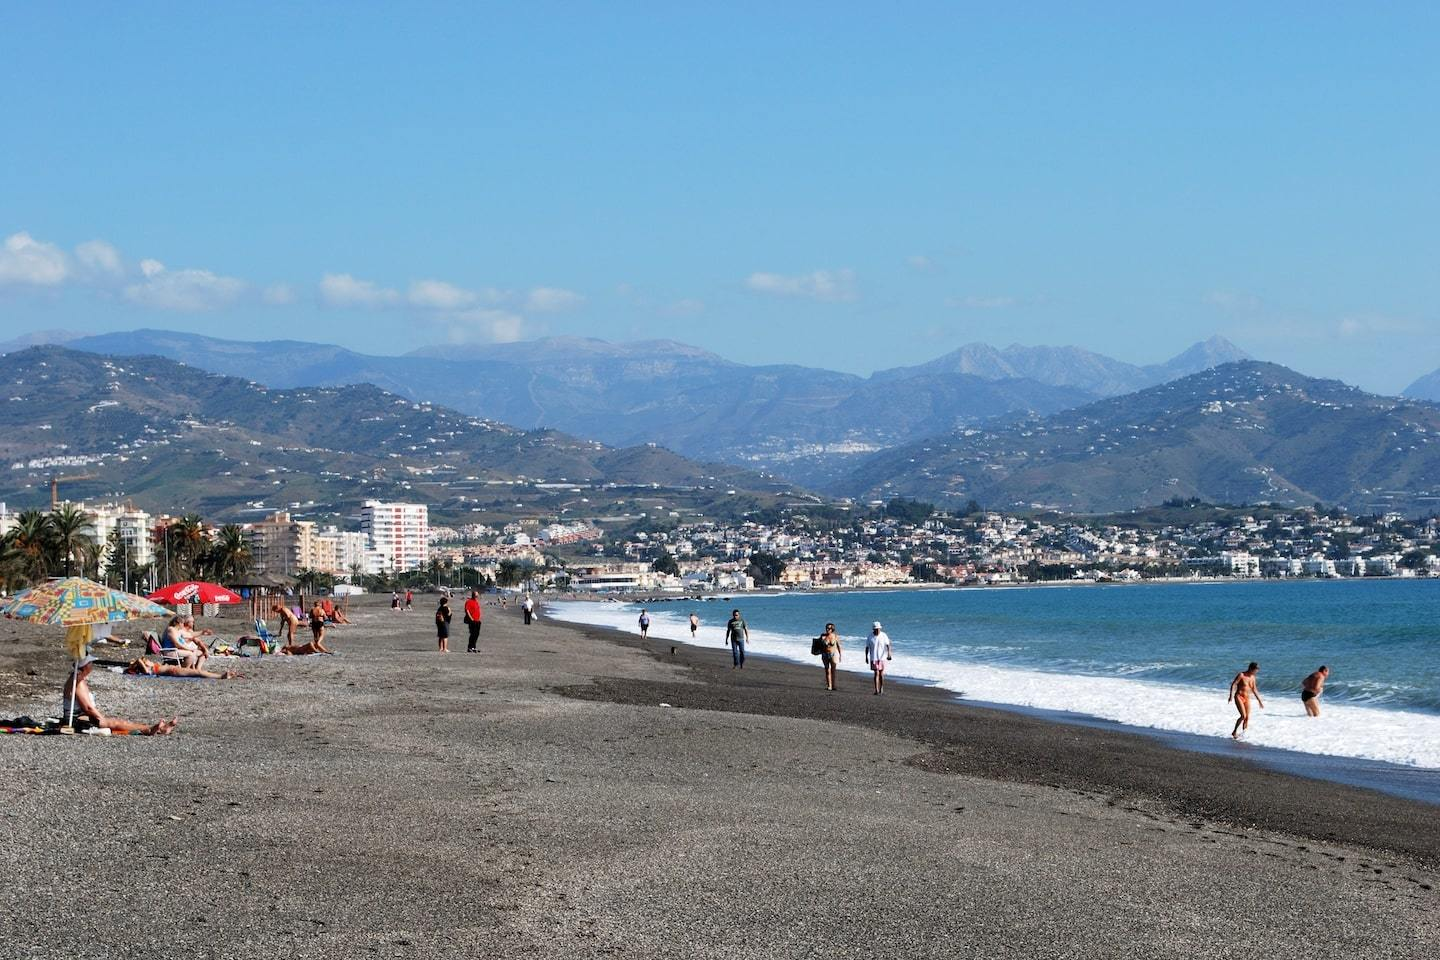 beach with dark sand and mountains behind